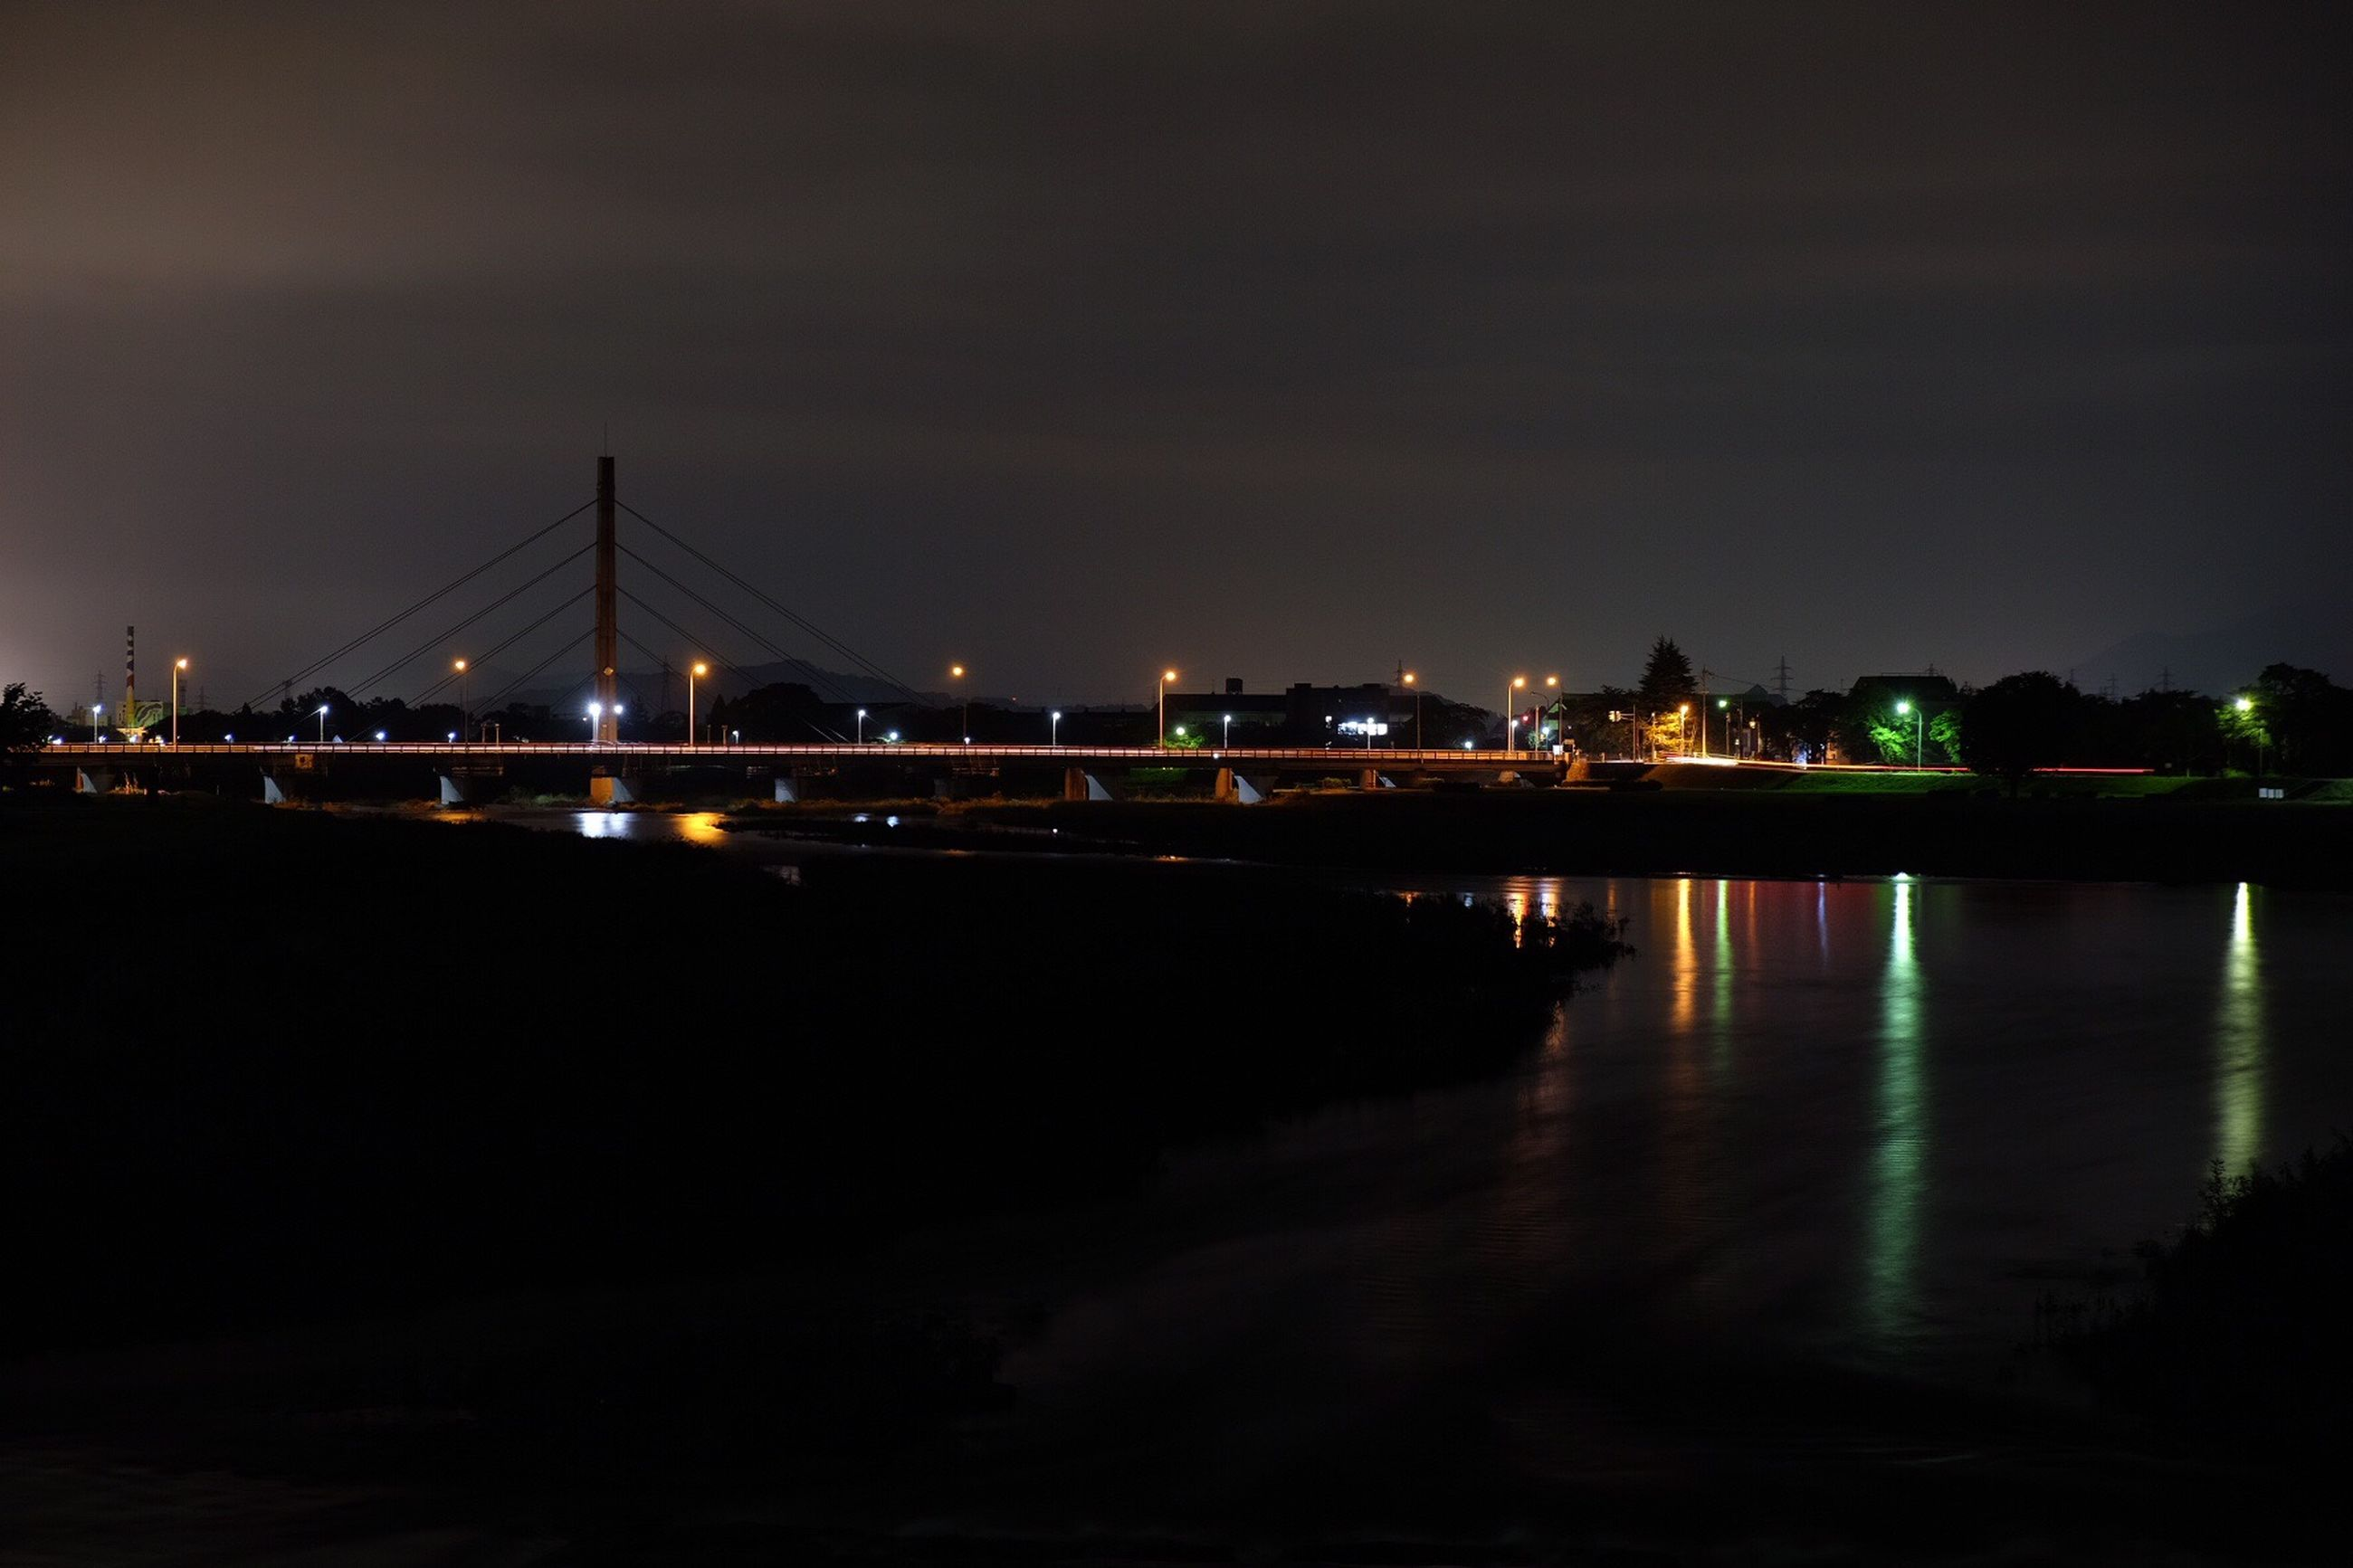 water, illuminated, connection, bridge - man made structure, suspension bridge, architecture, built structure, reflection, engineering, transportation, dark, travel destinations, night, river, cable-stayed bridge, waterfront, tourism, sky, sea, tranquility, bridge, outdoors, tranquil scene, famous place, scenics, city life